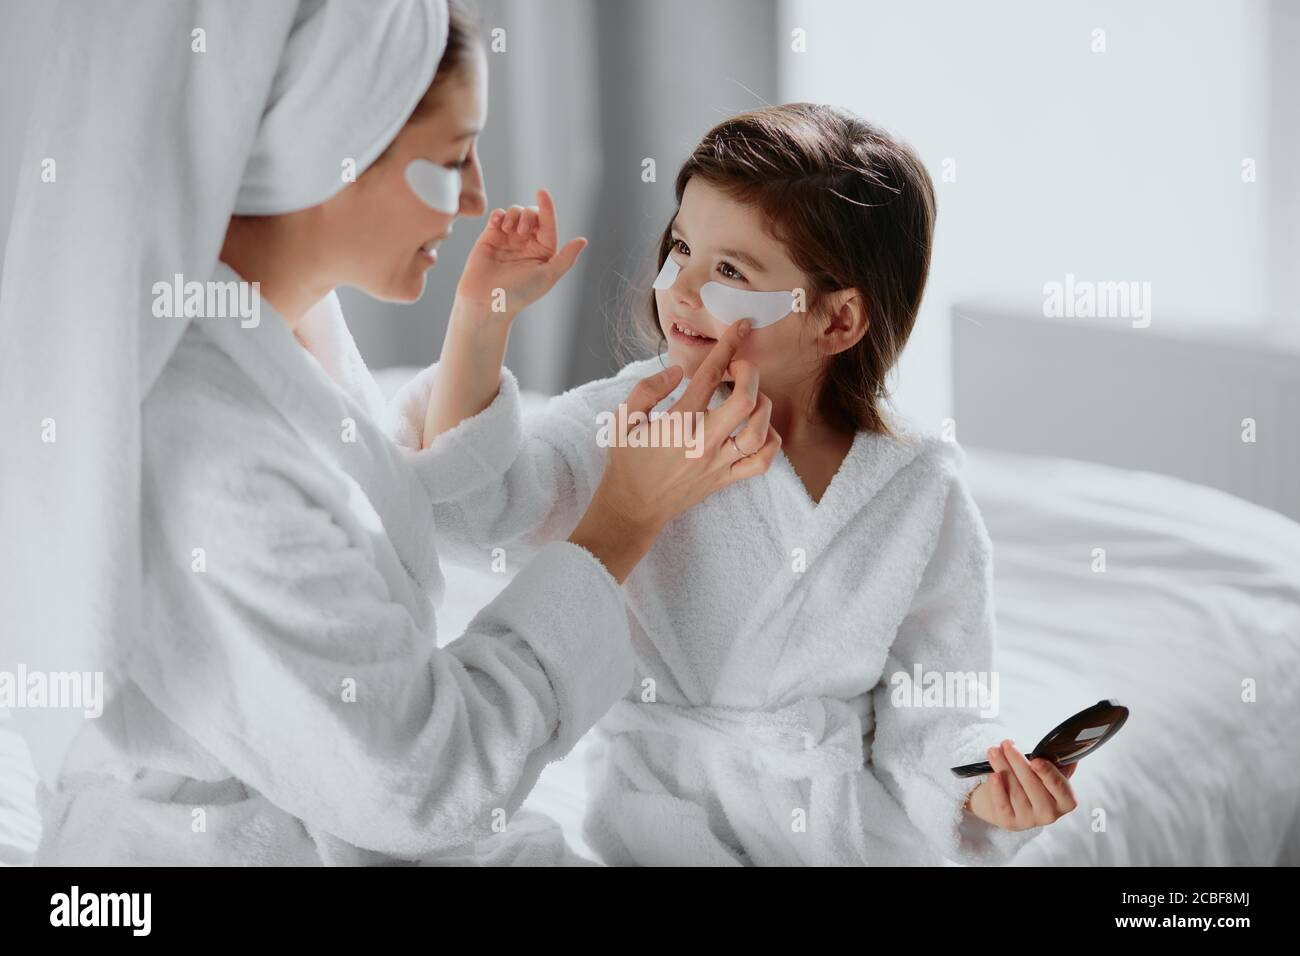 beauty concept. careful attentive mother use patches for eyes and her daughter in mask too. parents and children interested in beauty procedures Stock Photo